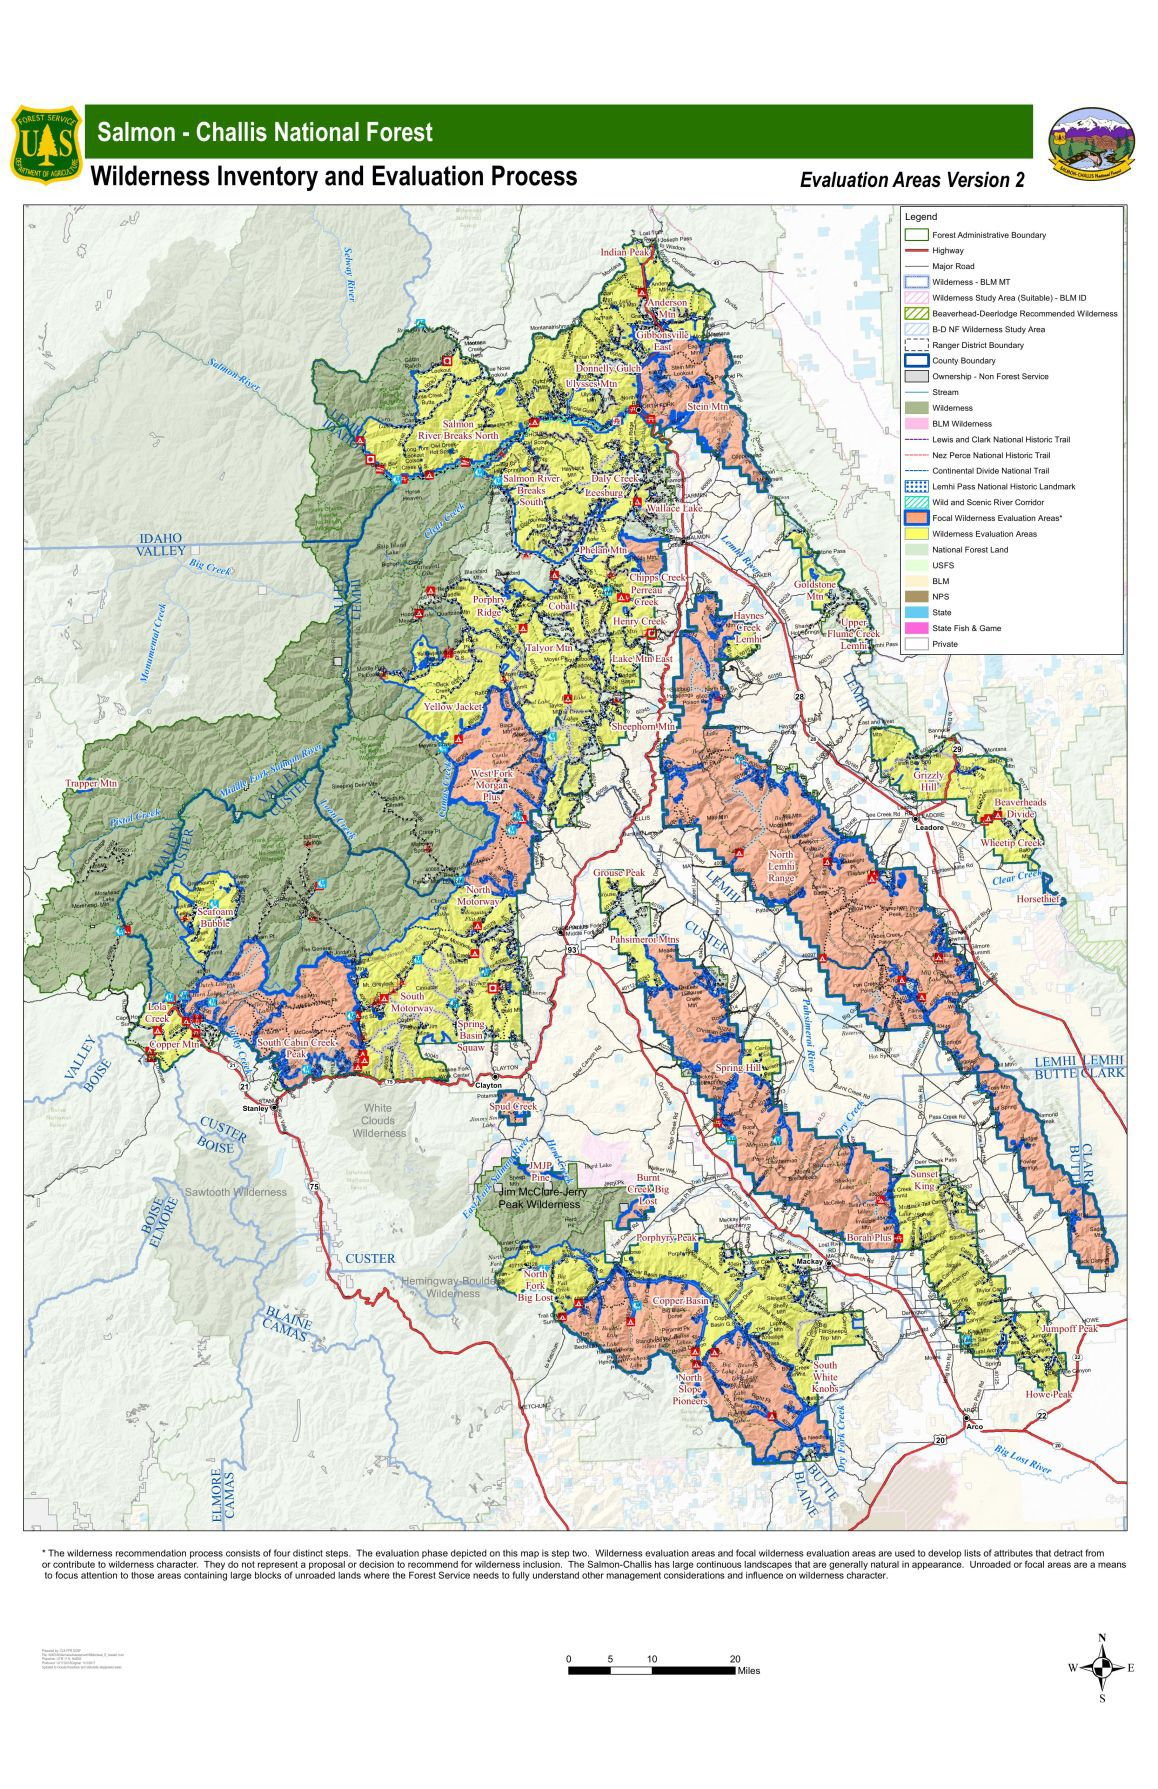 Salmon-Challis National Forest Wilderness Inventory and Evaluation Process